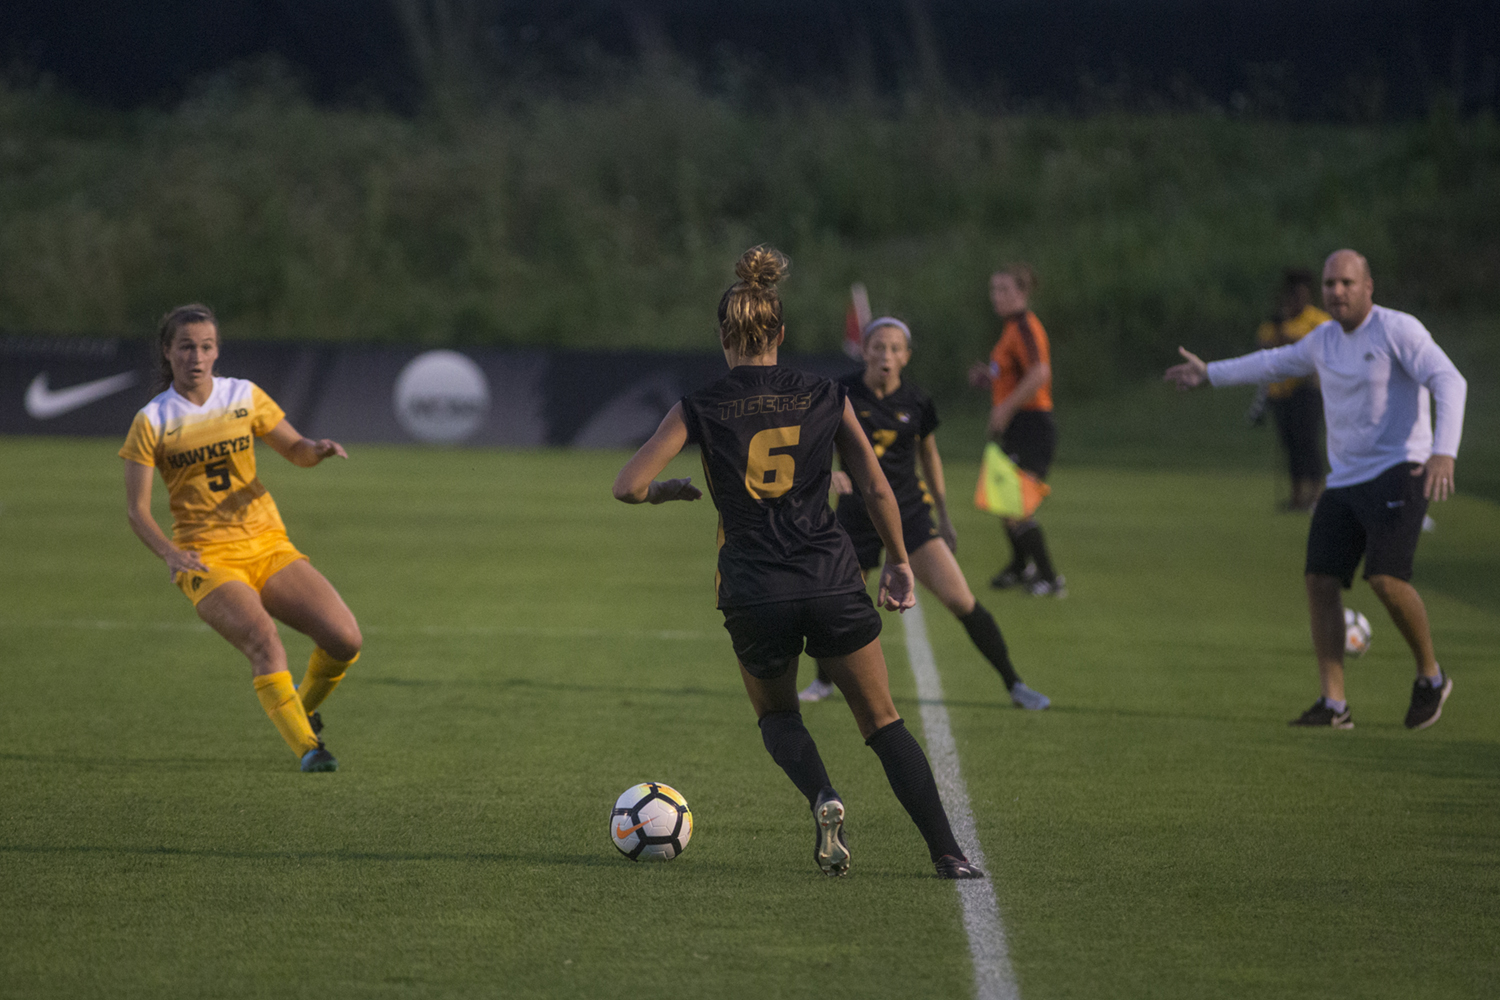 Iowa's Anna Frick navigate's the field during a soccer match between Iowa and Missouri at the Iowa Soccer Complex on Friday, August 17, 2018. The Hawkeyes drew the Tigers, 0-0.